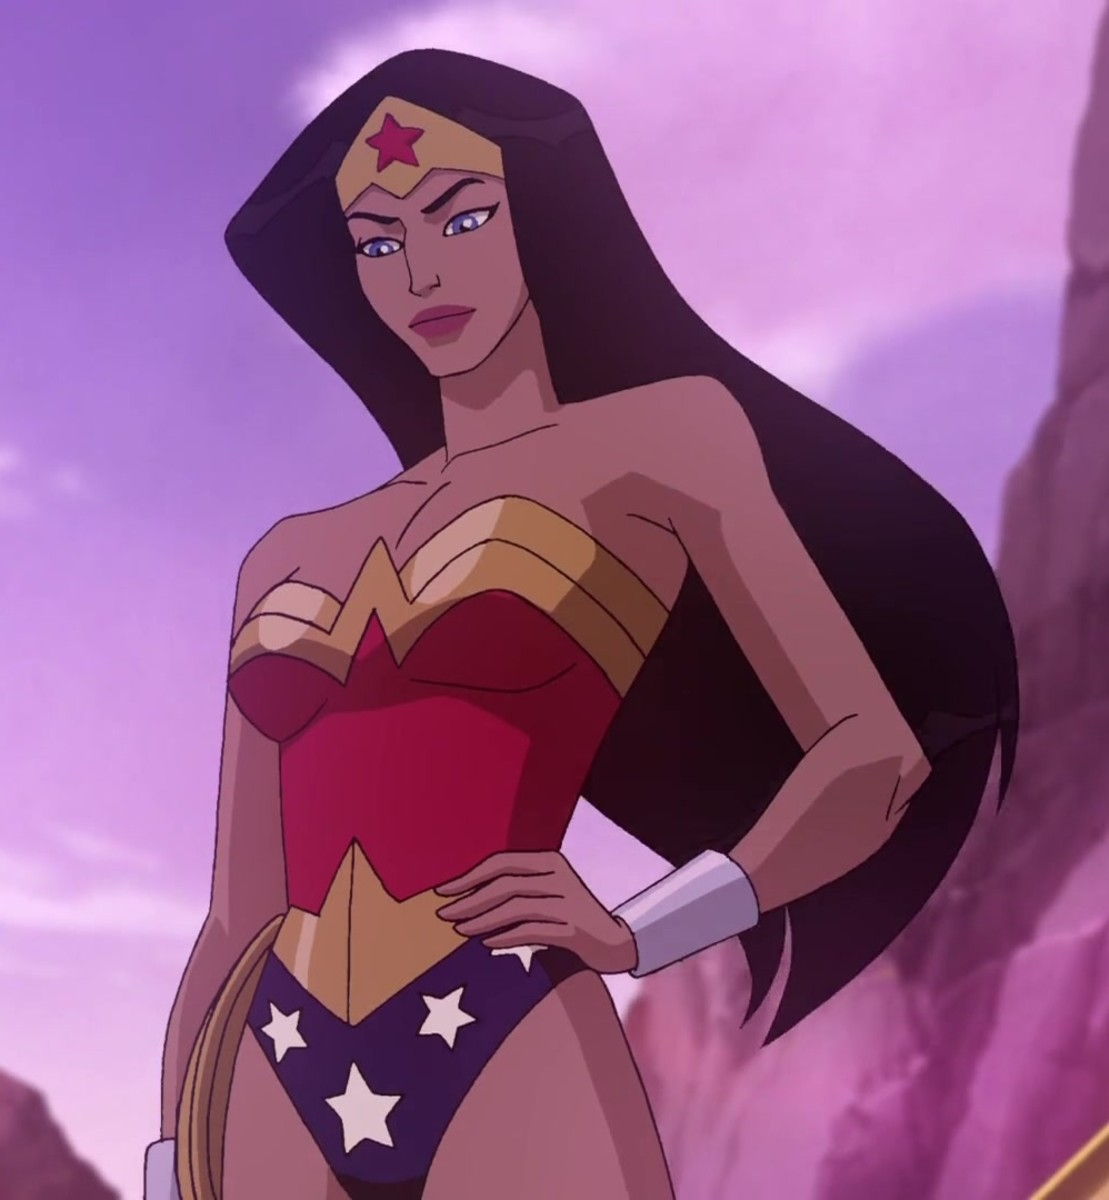 Diana donning the Wonder Woman costume.